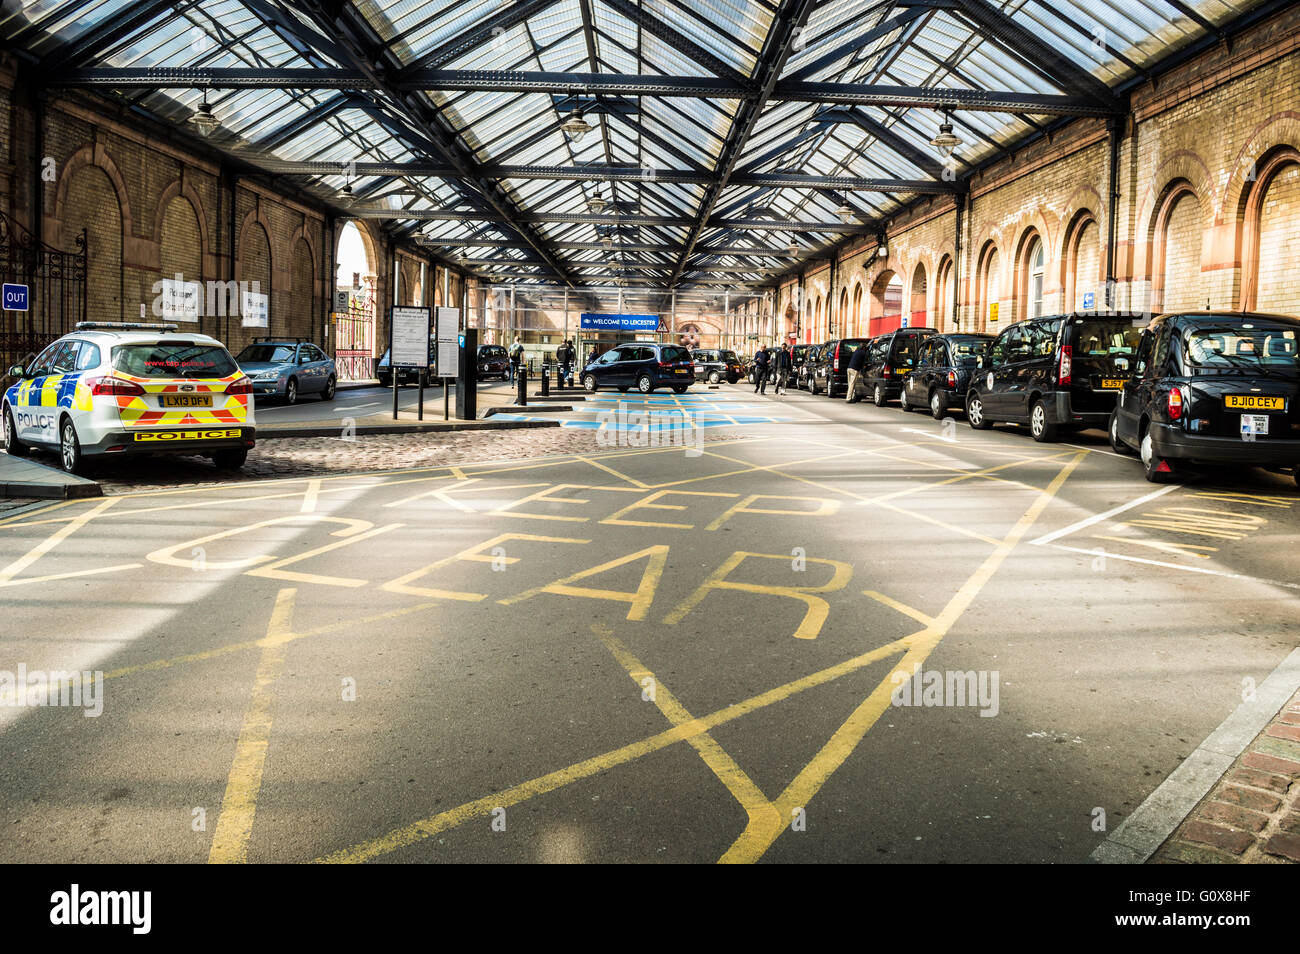 Leicester Station taxi rank - Stock Image